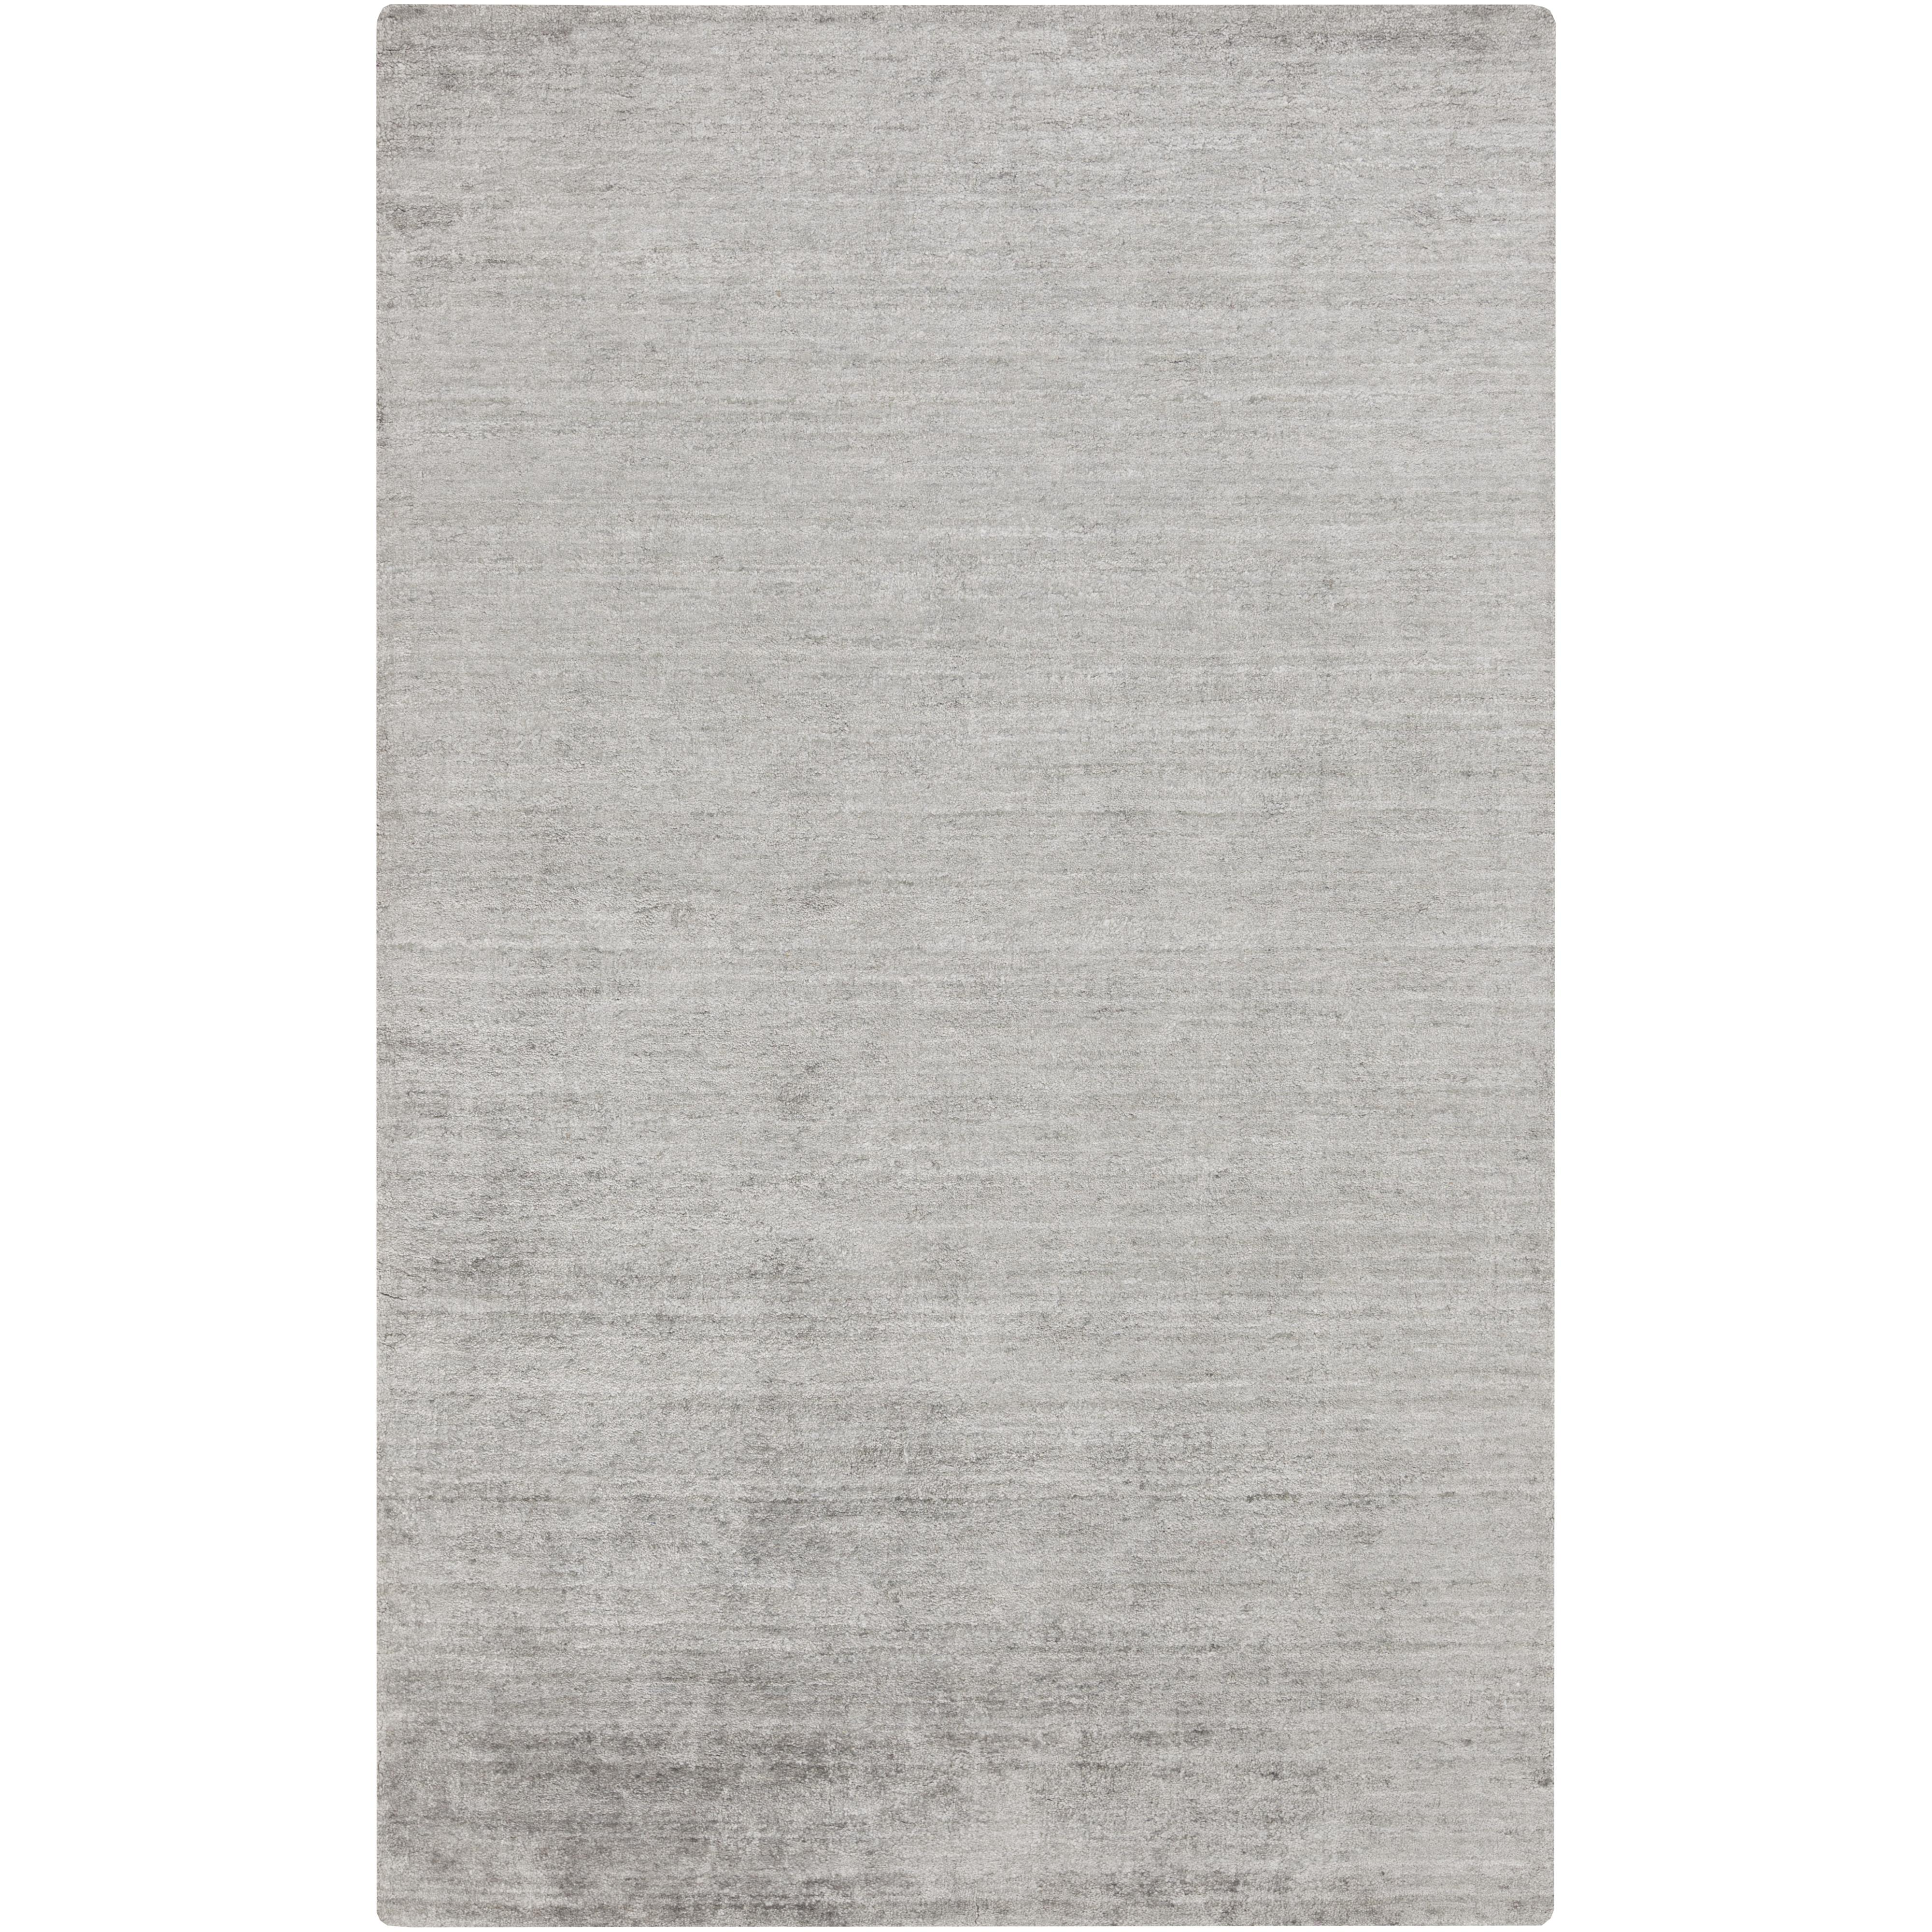 Surya Rugs Haize 8' x 11' - Item Number: HAZ6012-811